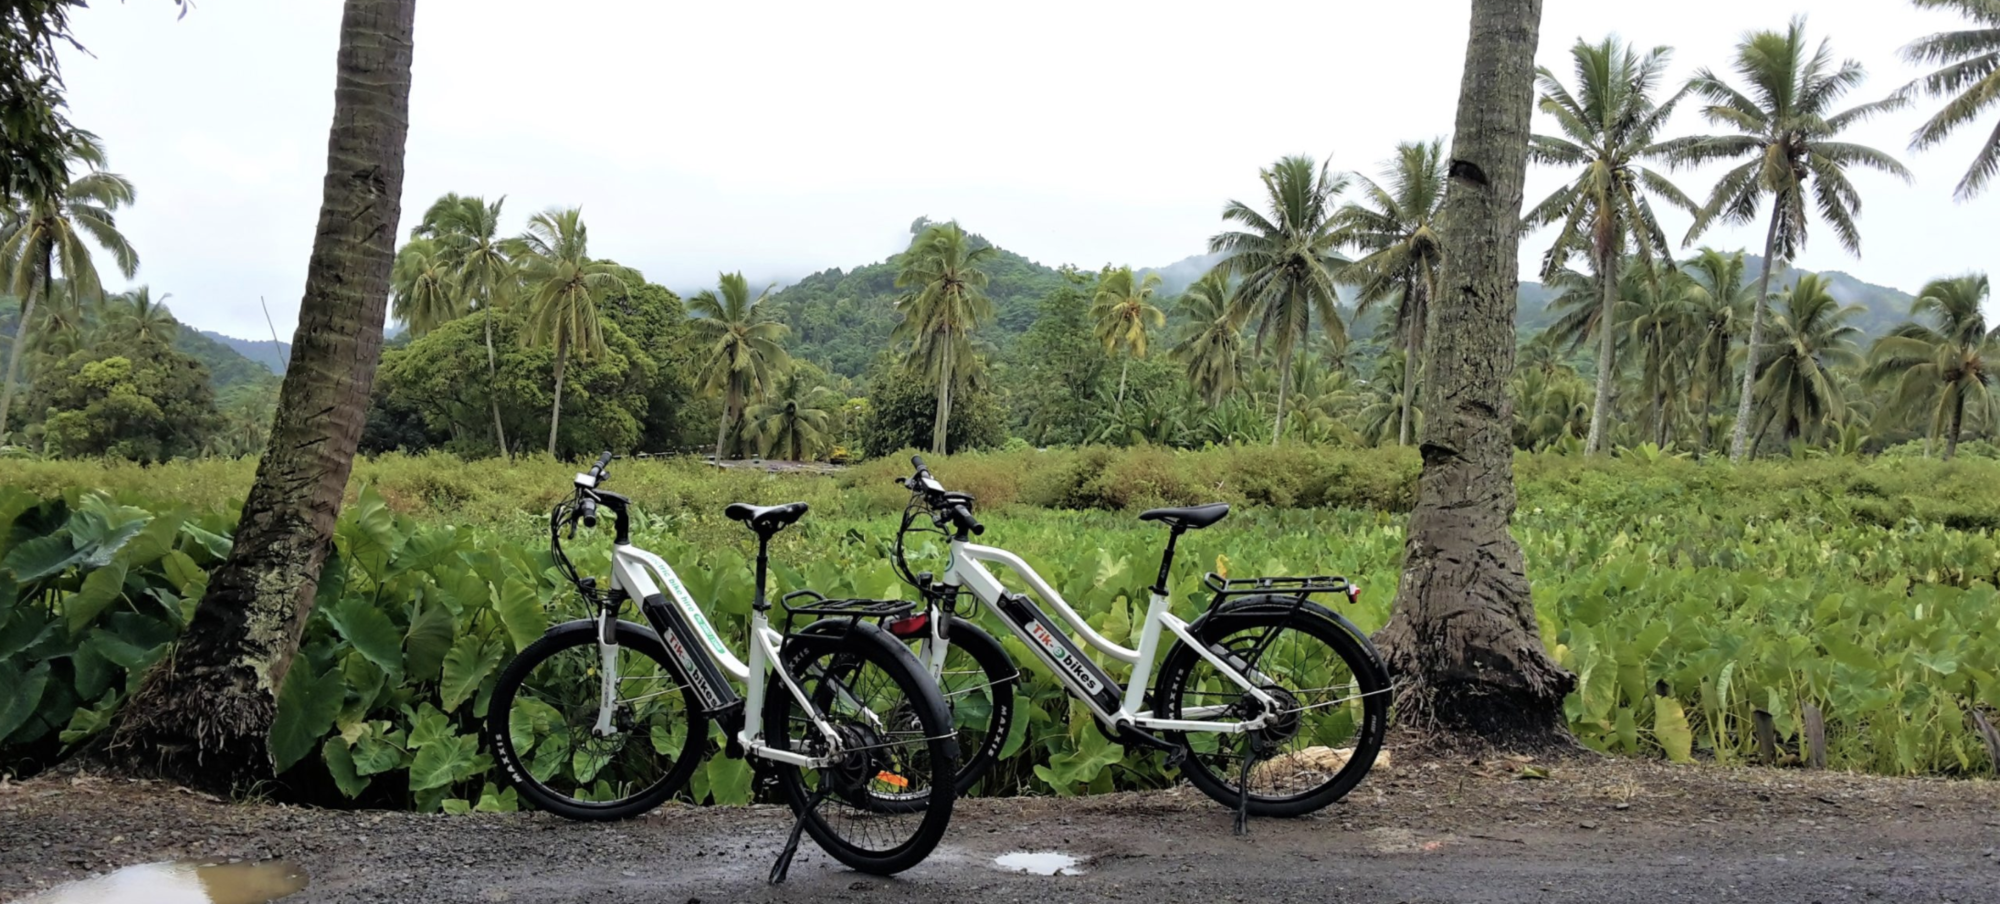 Rent e-Bikes with Tik-e Tours in Rarotonga